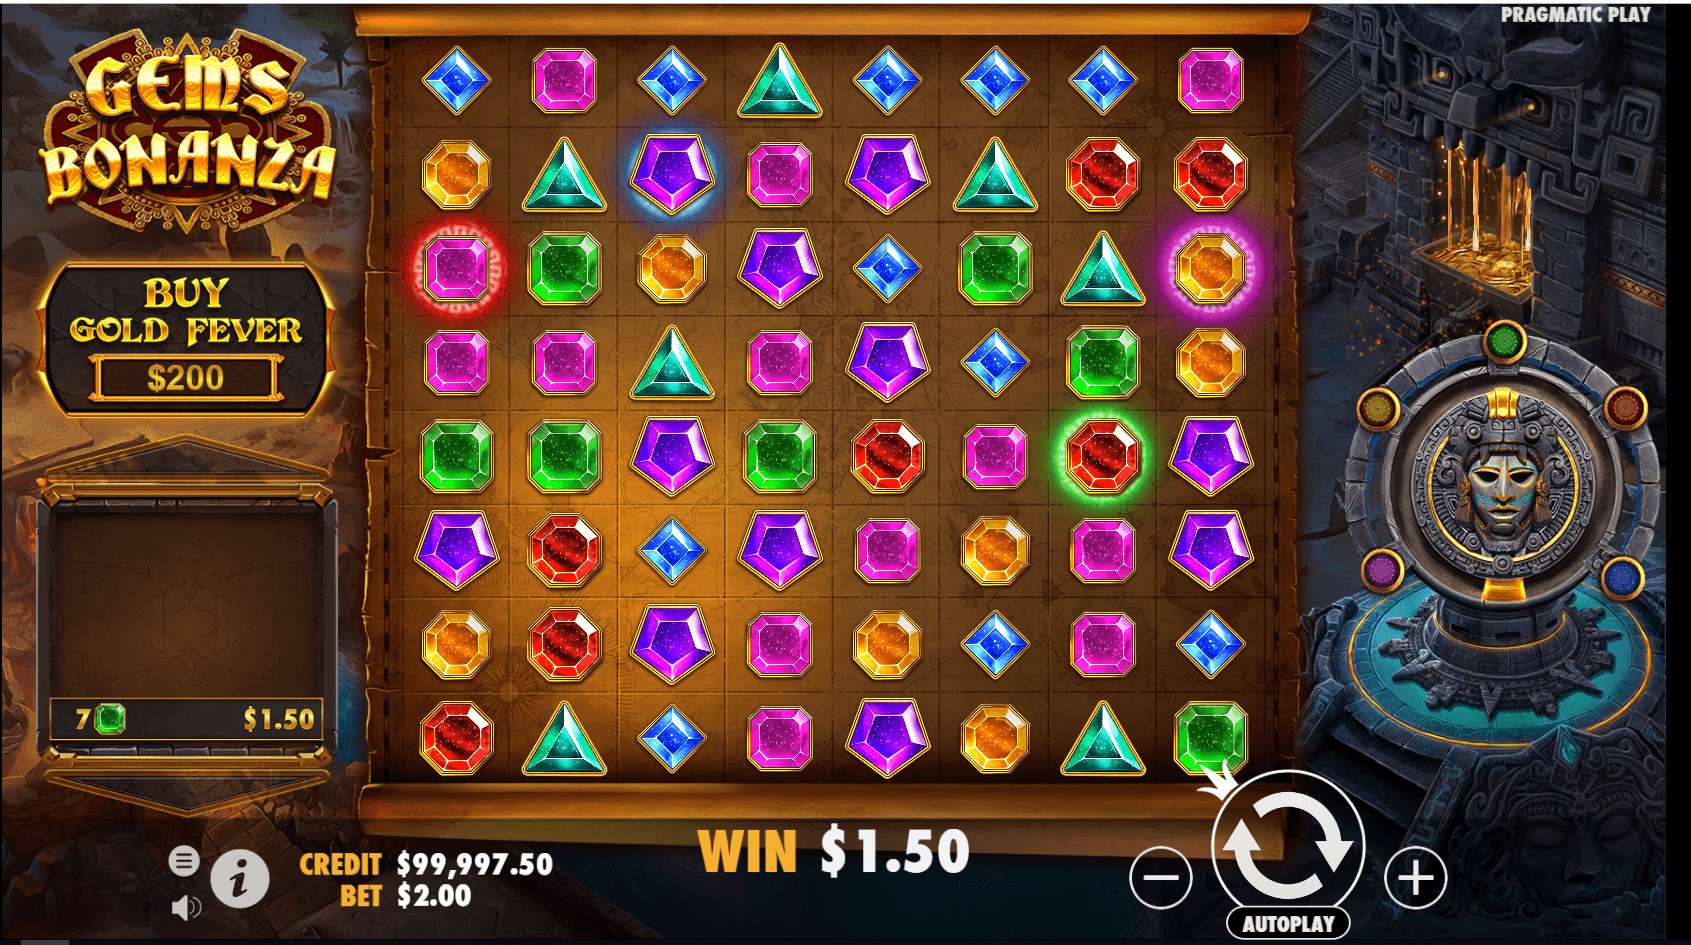 Gems Bonanza video slot base game